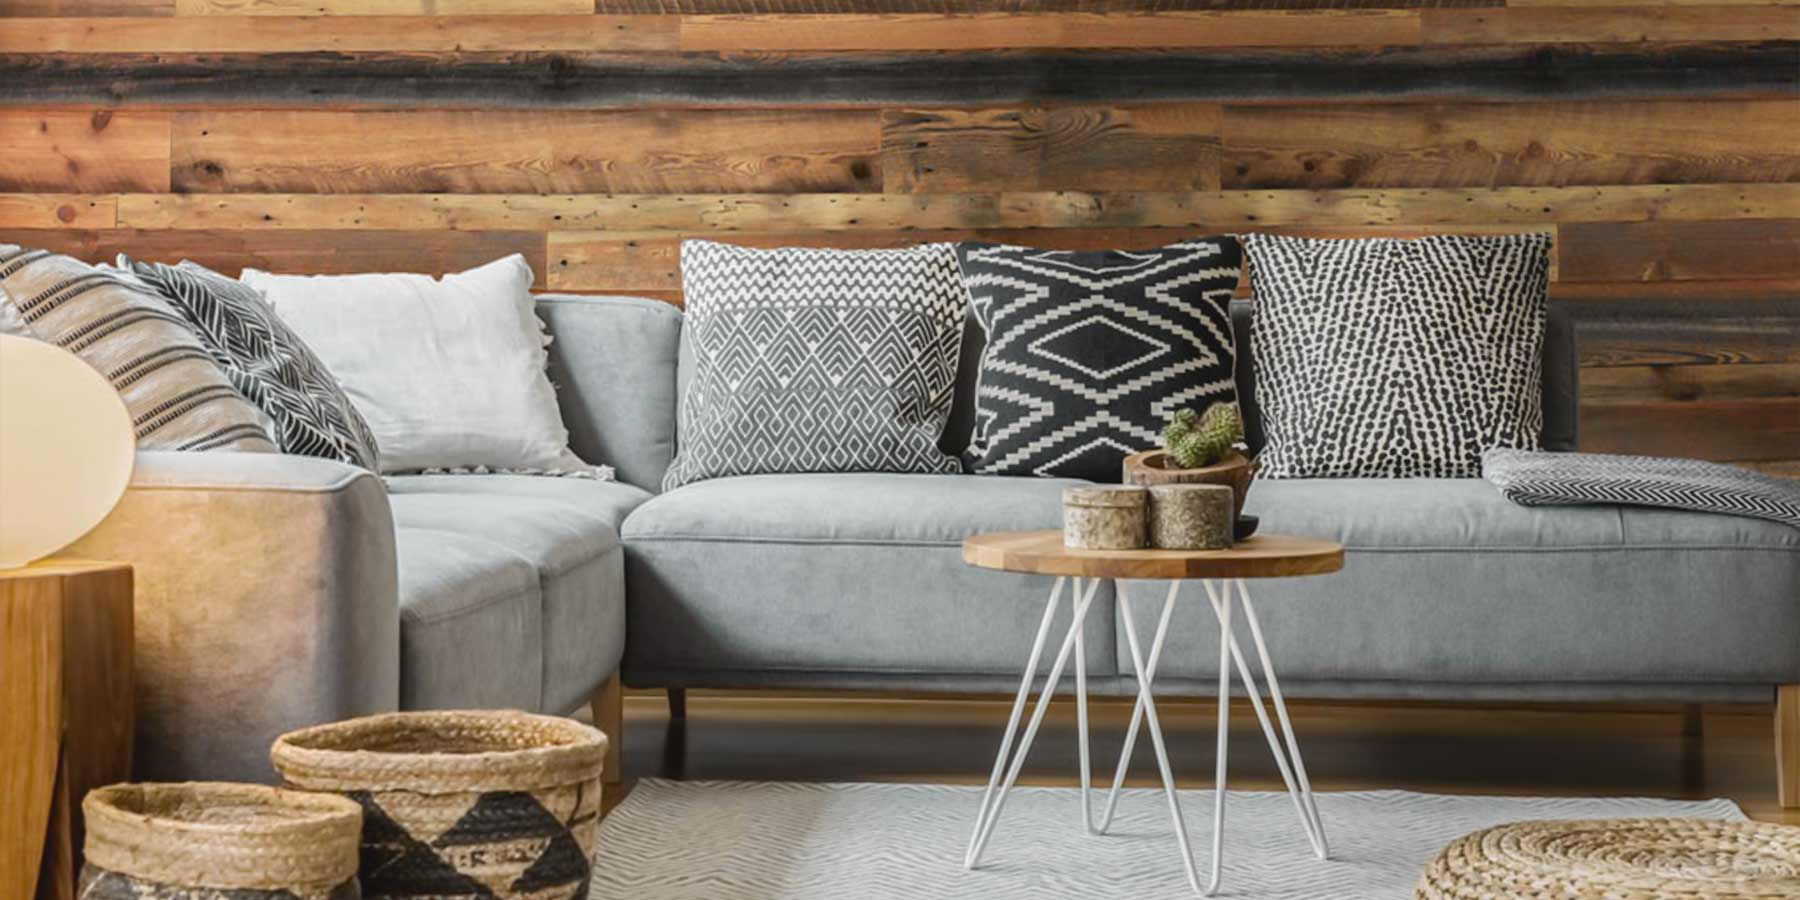 Boho Décor Ideas by RealCraft: Wood Accent Wall